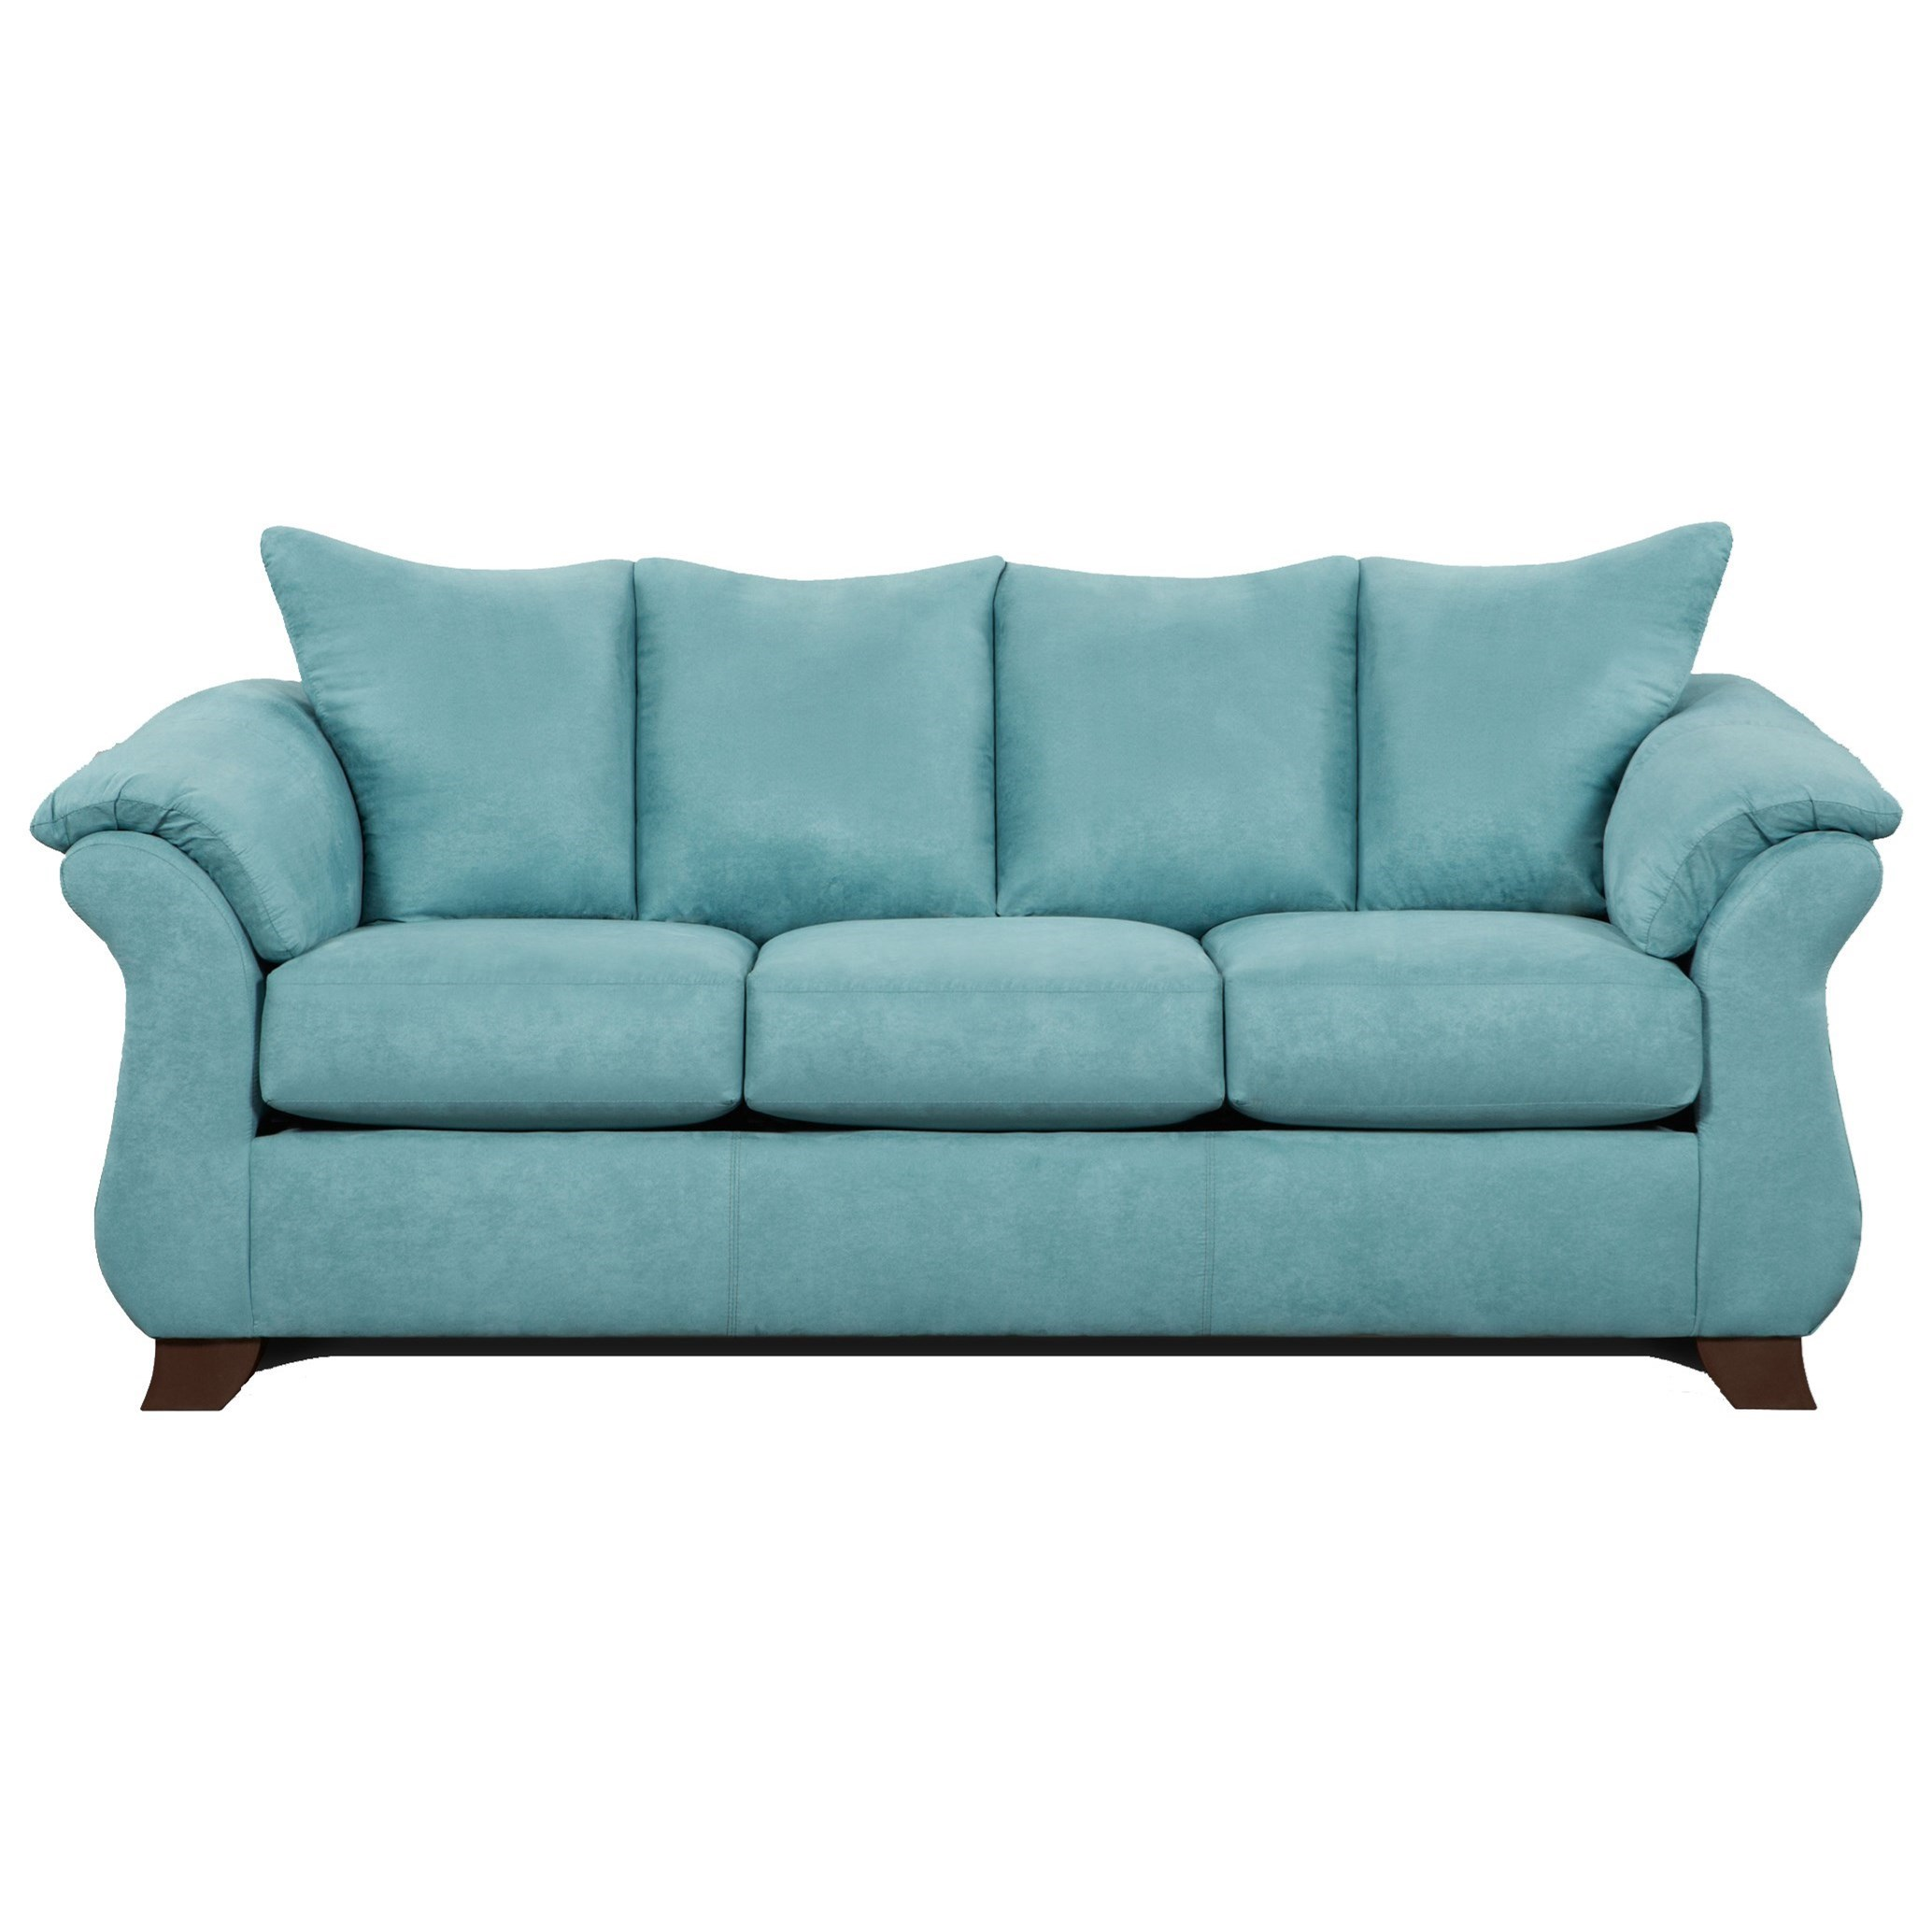 Affordable Furniture 6700Queen Sleeper Sofa ...